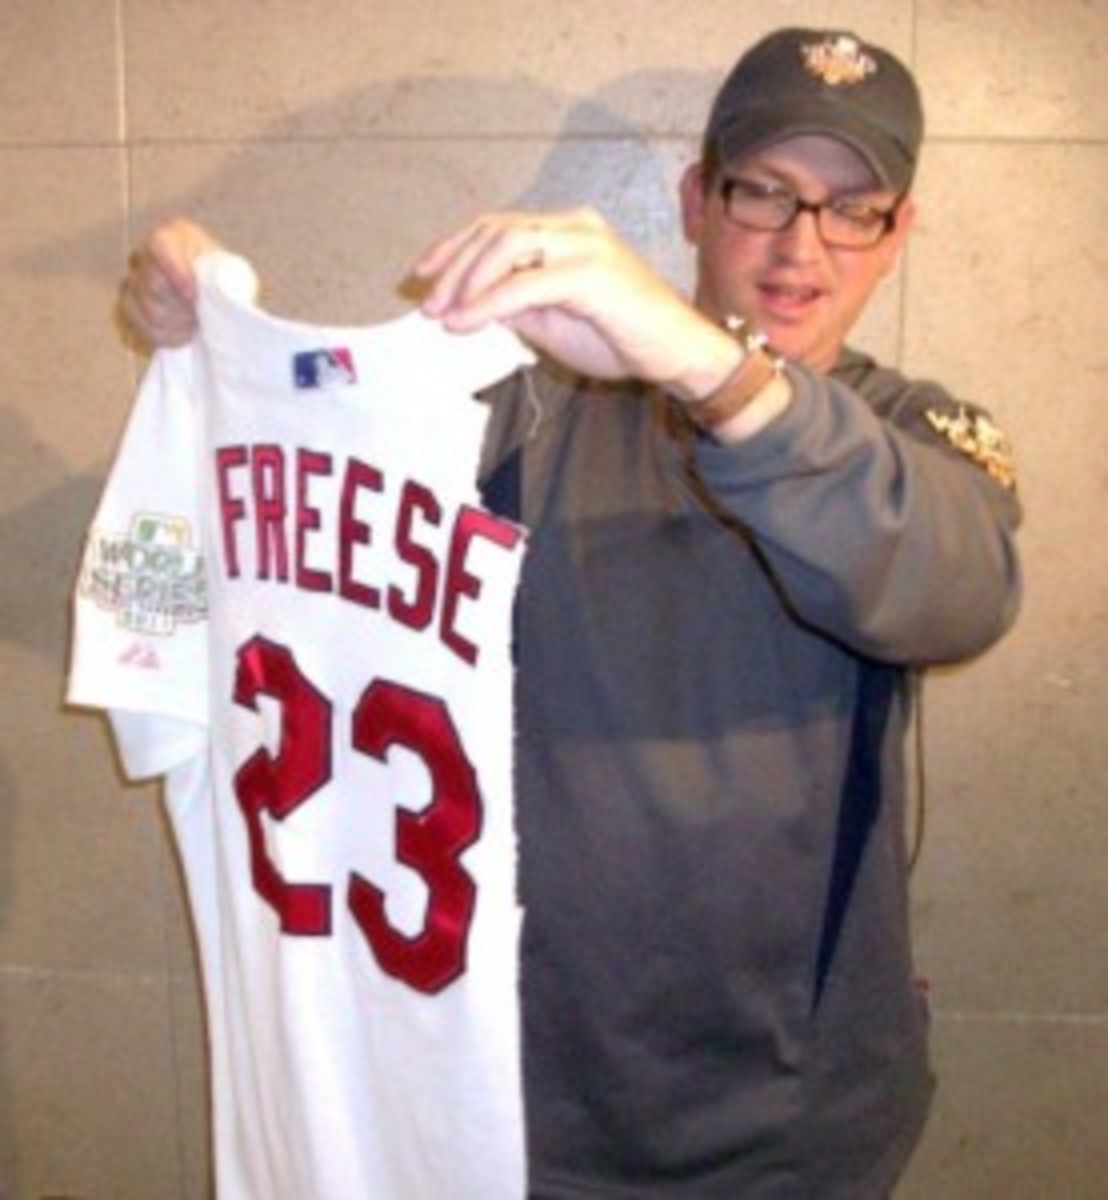 Freese (26)